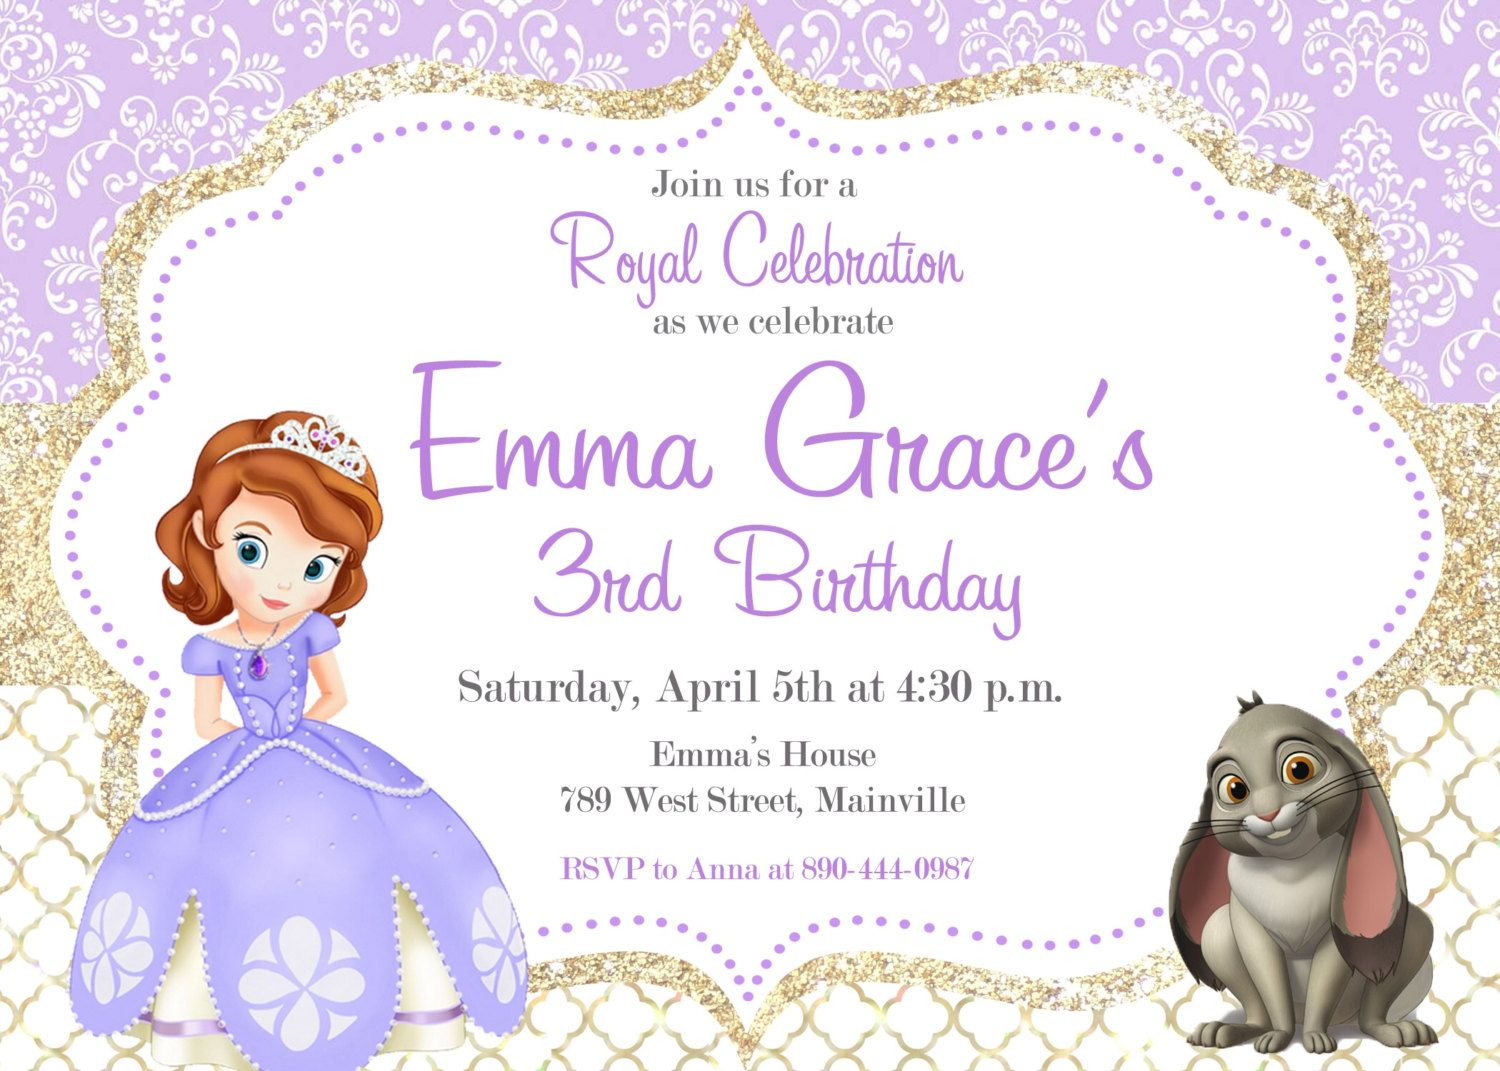 Sofia the First Birthday Party Invitation, Digital or Printed ...